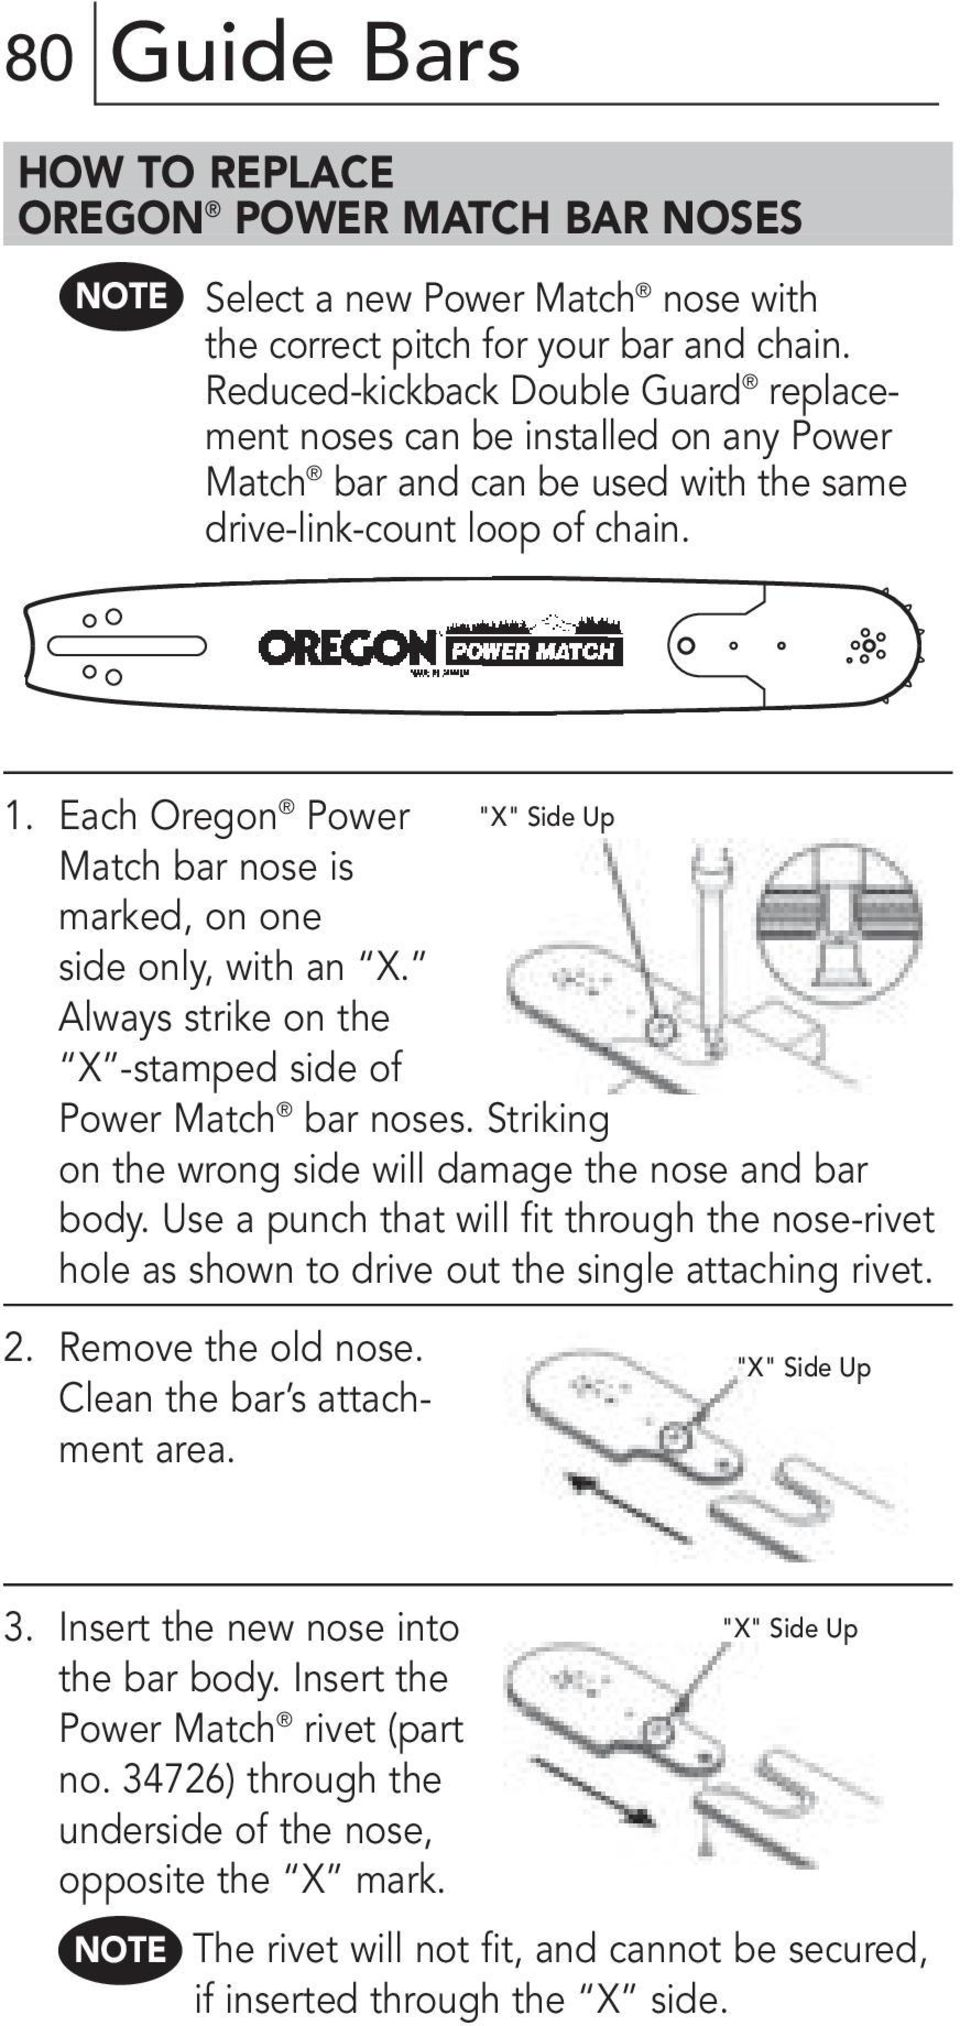 "Each Oregon Power ""X"" Side Up Match bar nose is marked, on one side only, with an X. Always strike on the X -stamped side of Power Match bar noses."